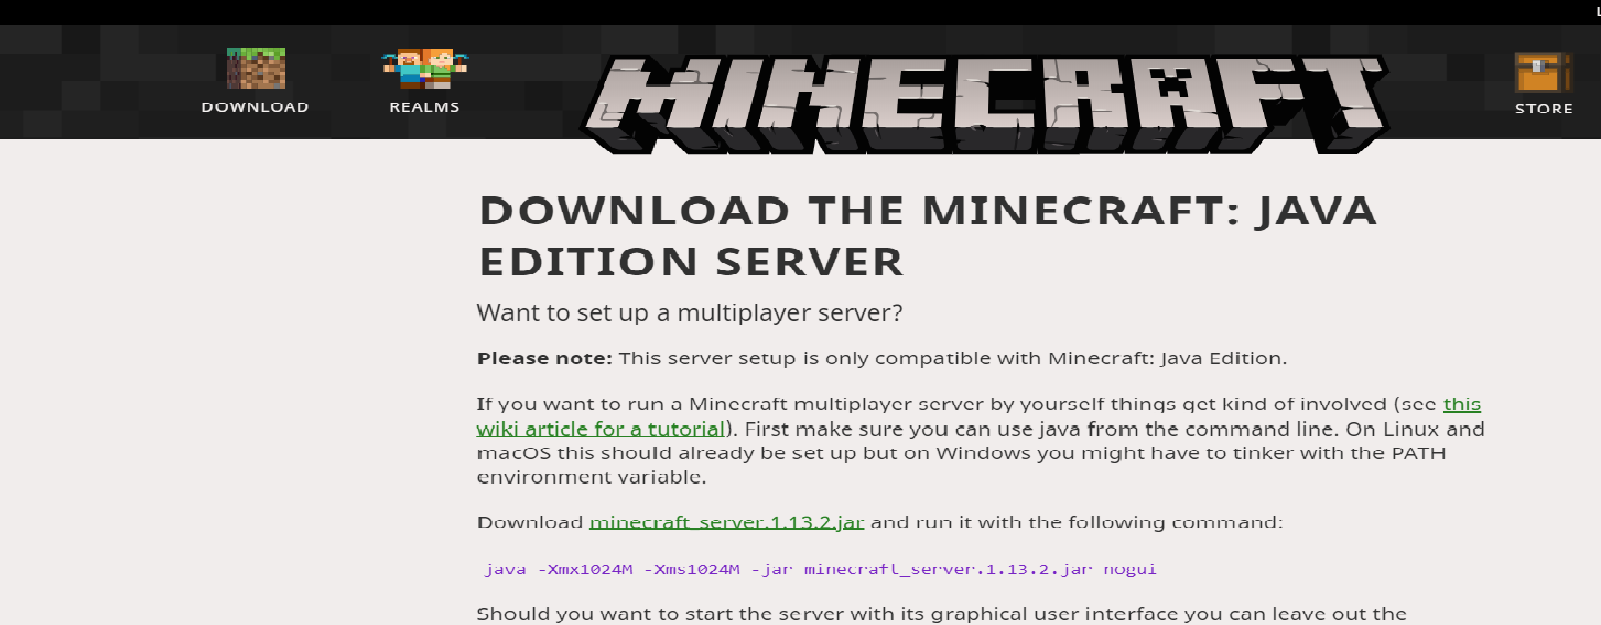 Minecraft server download